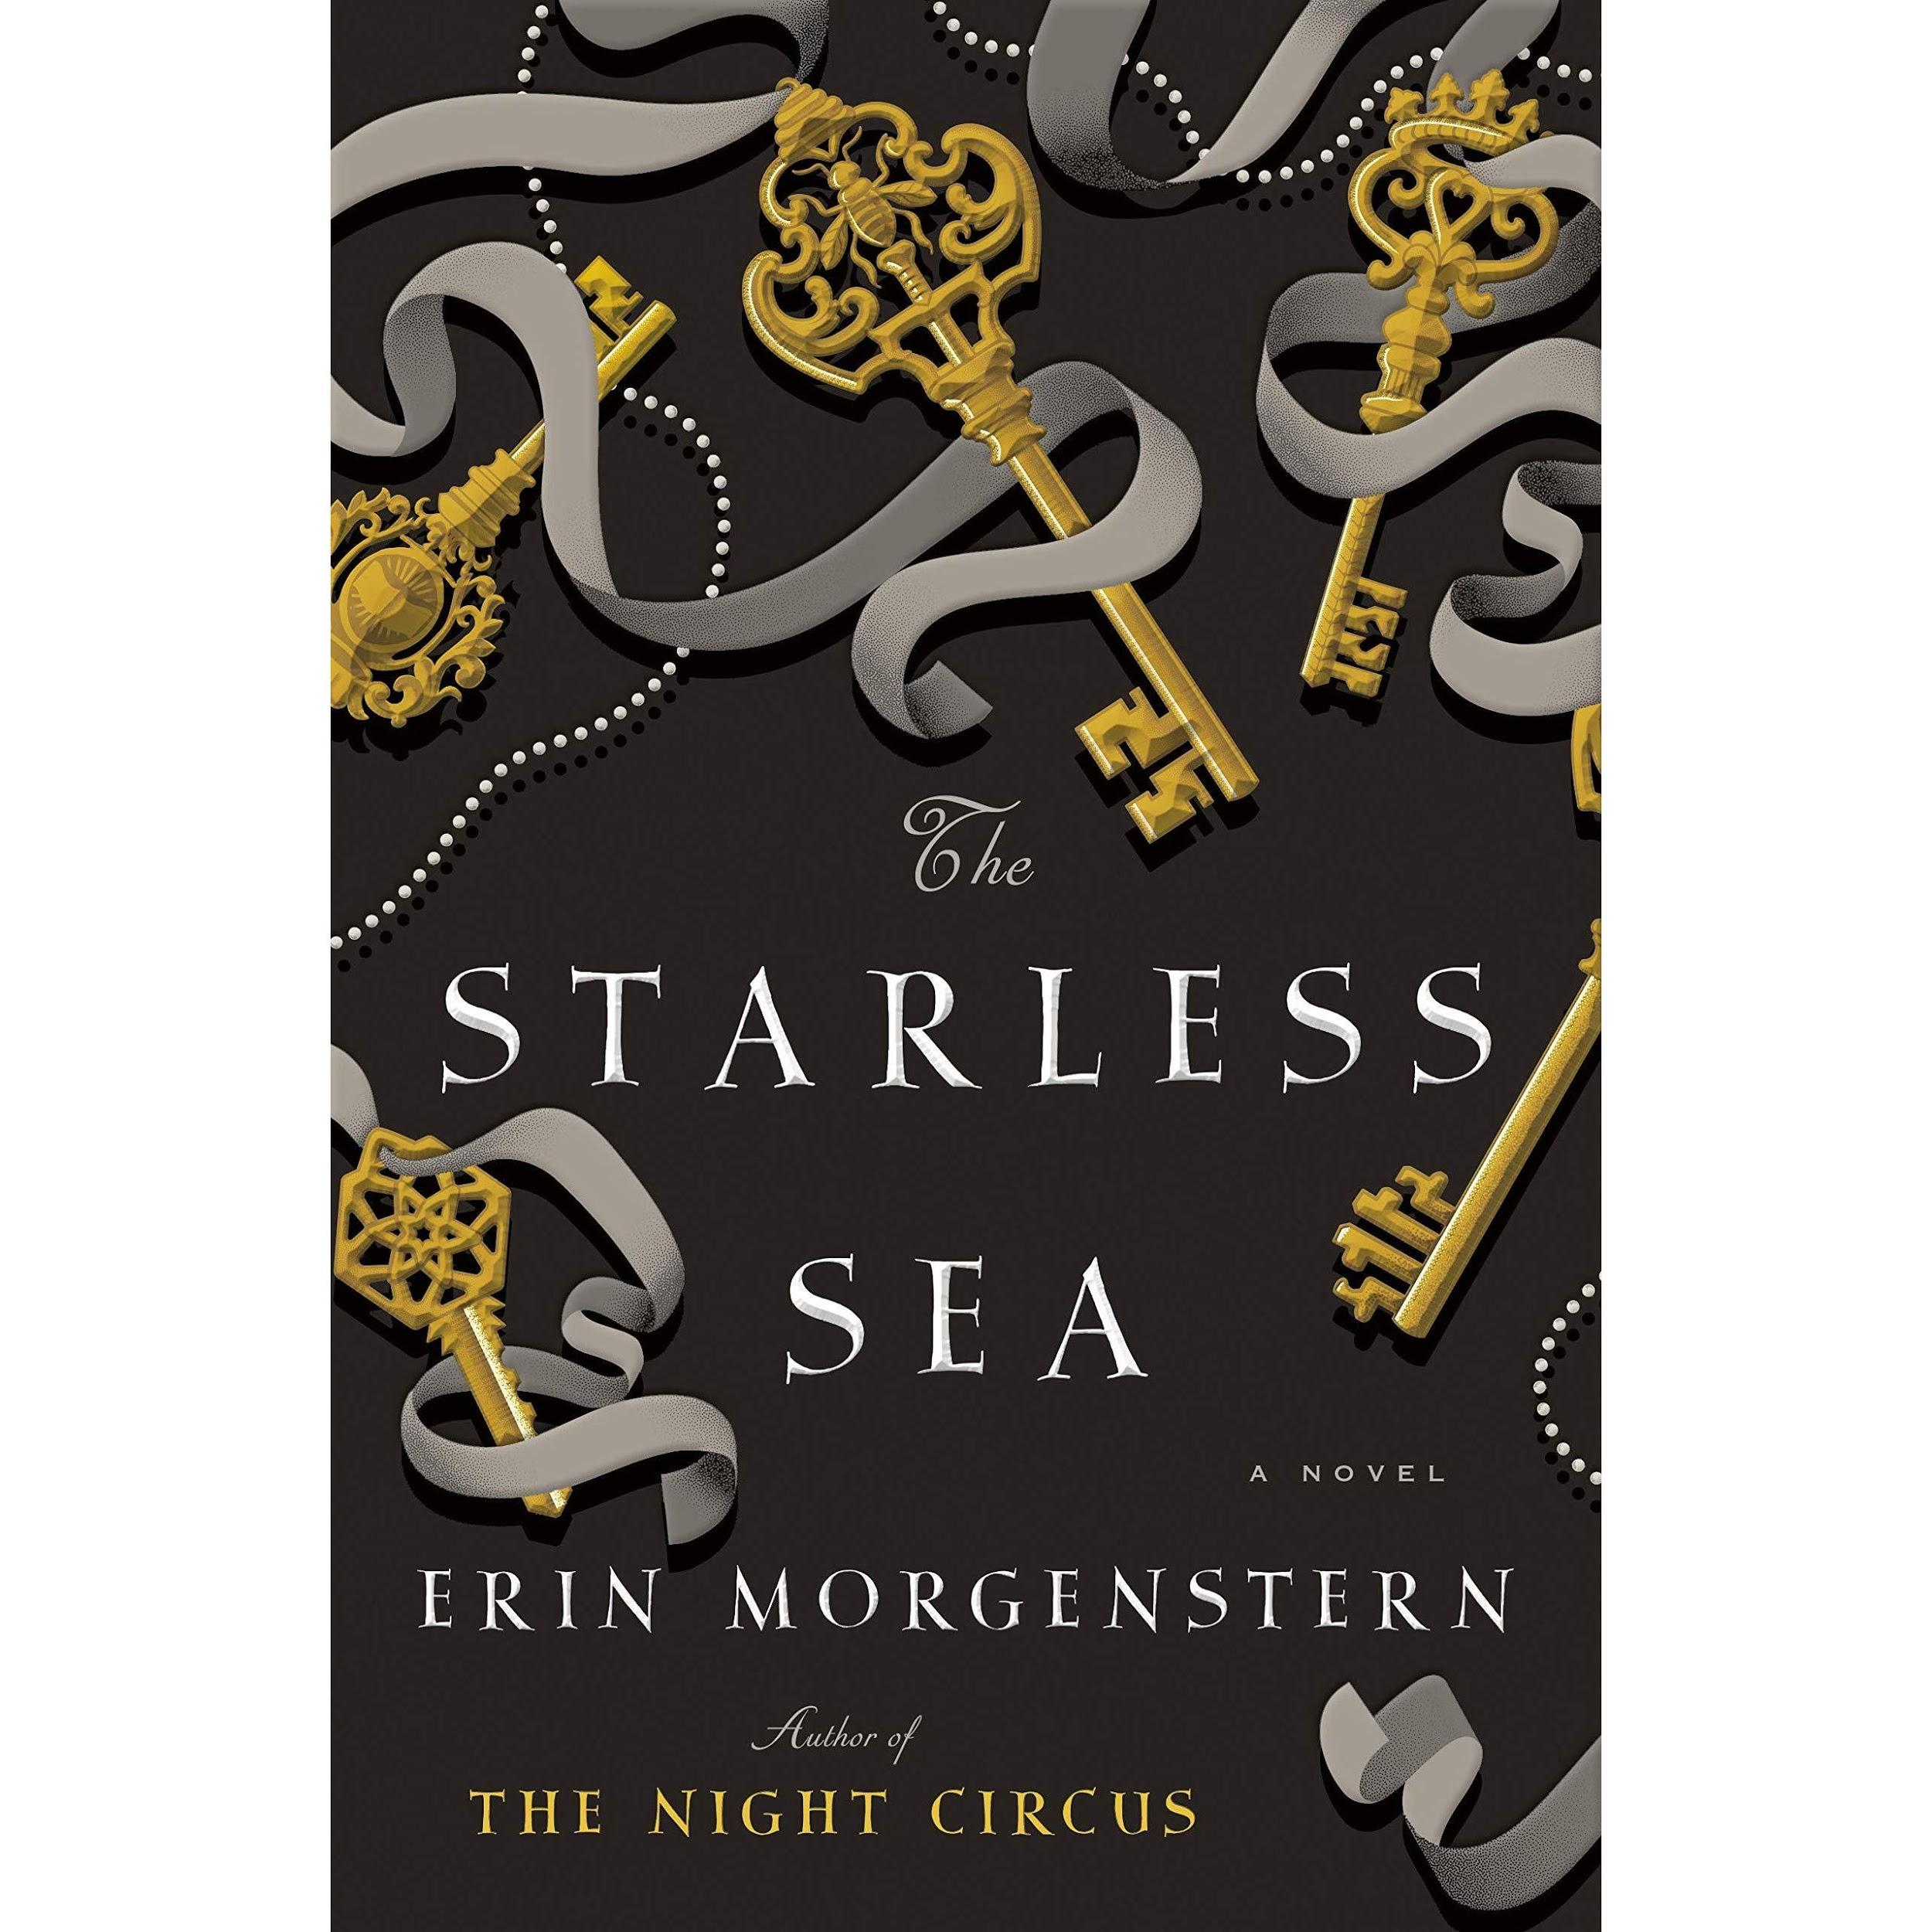 Image result for the starless sea erin morgenstern